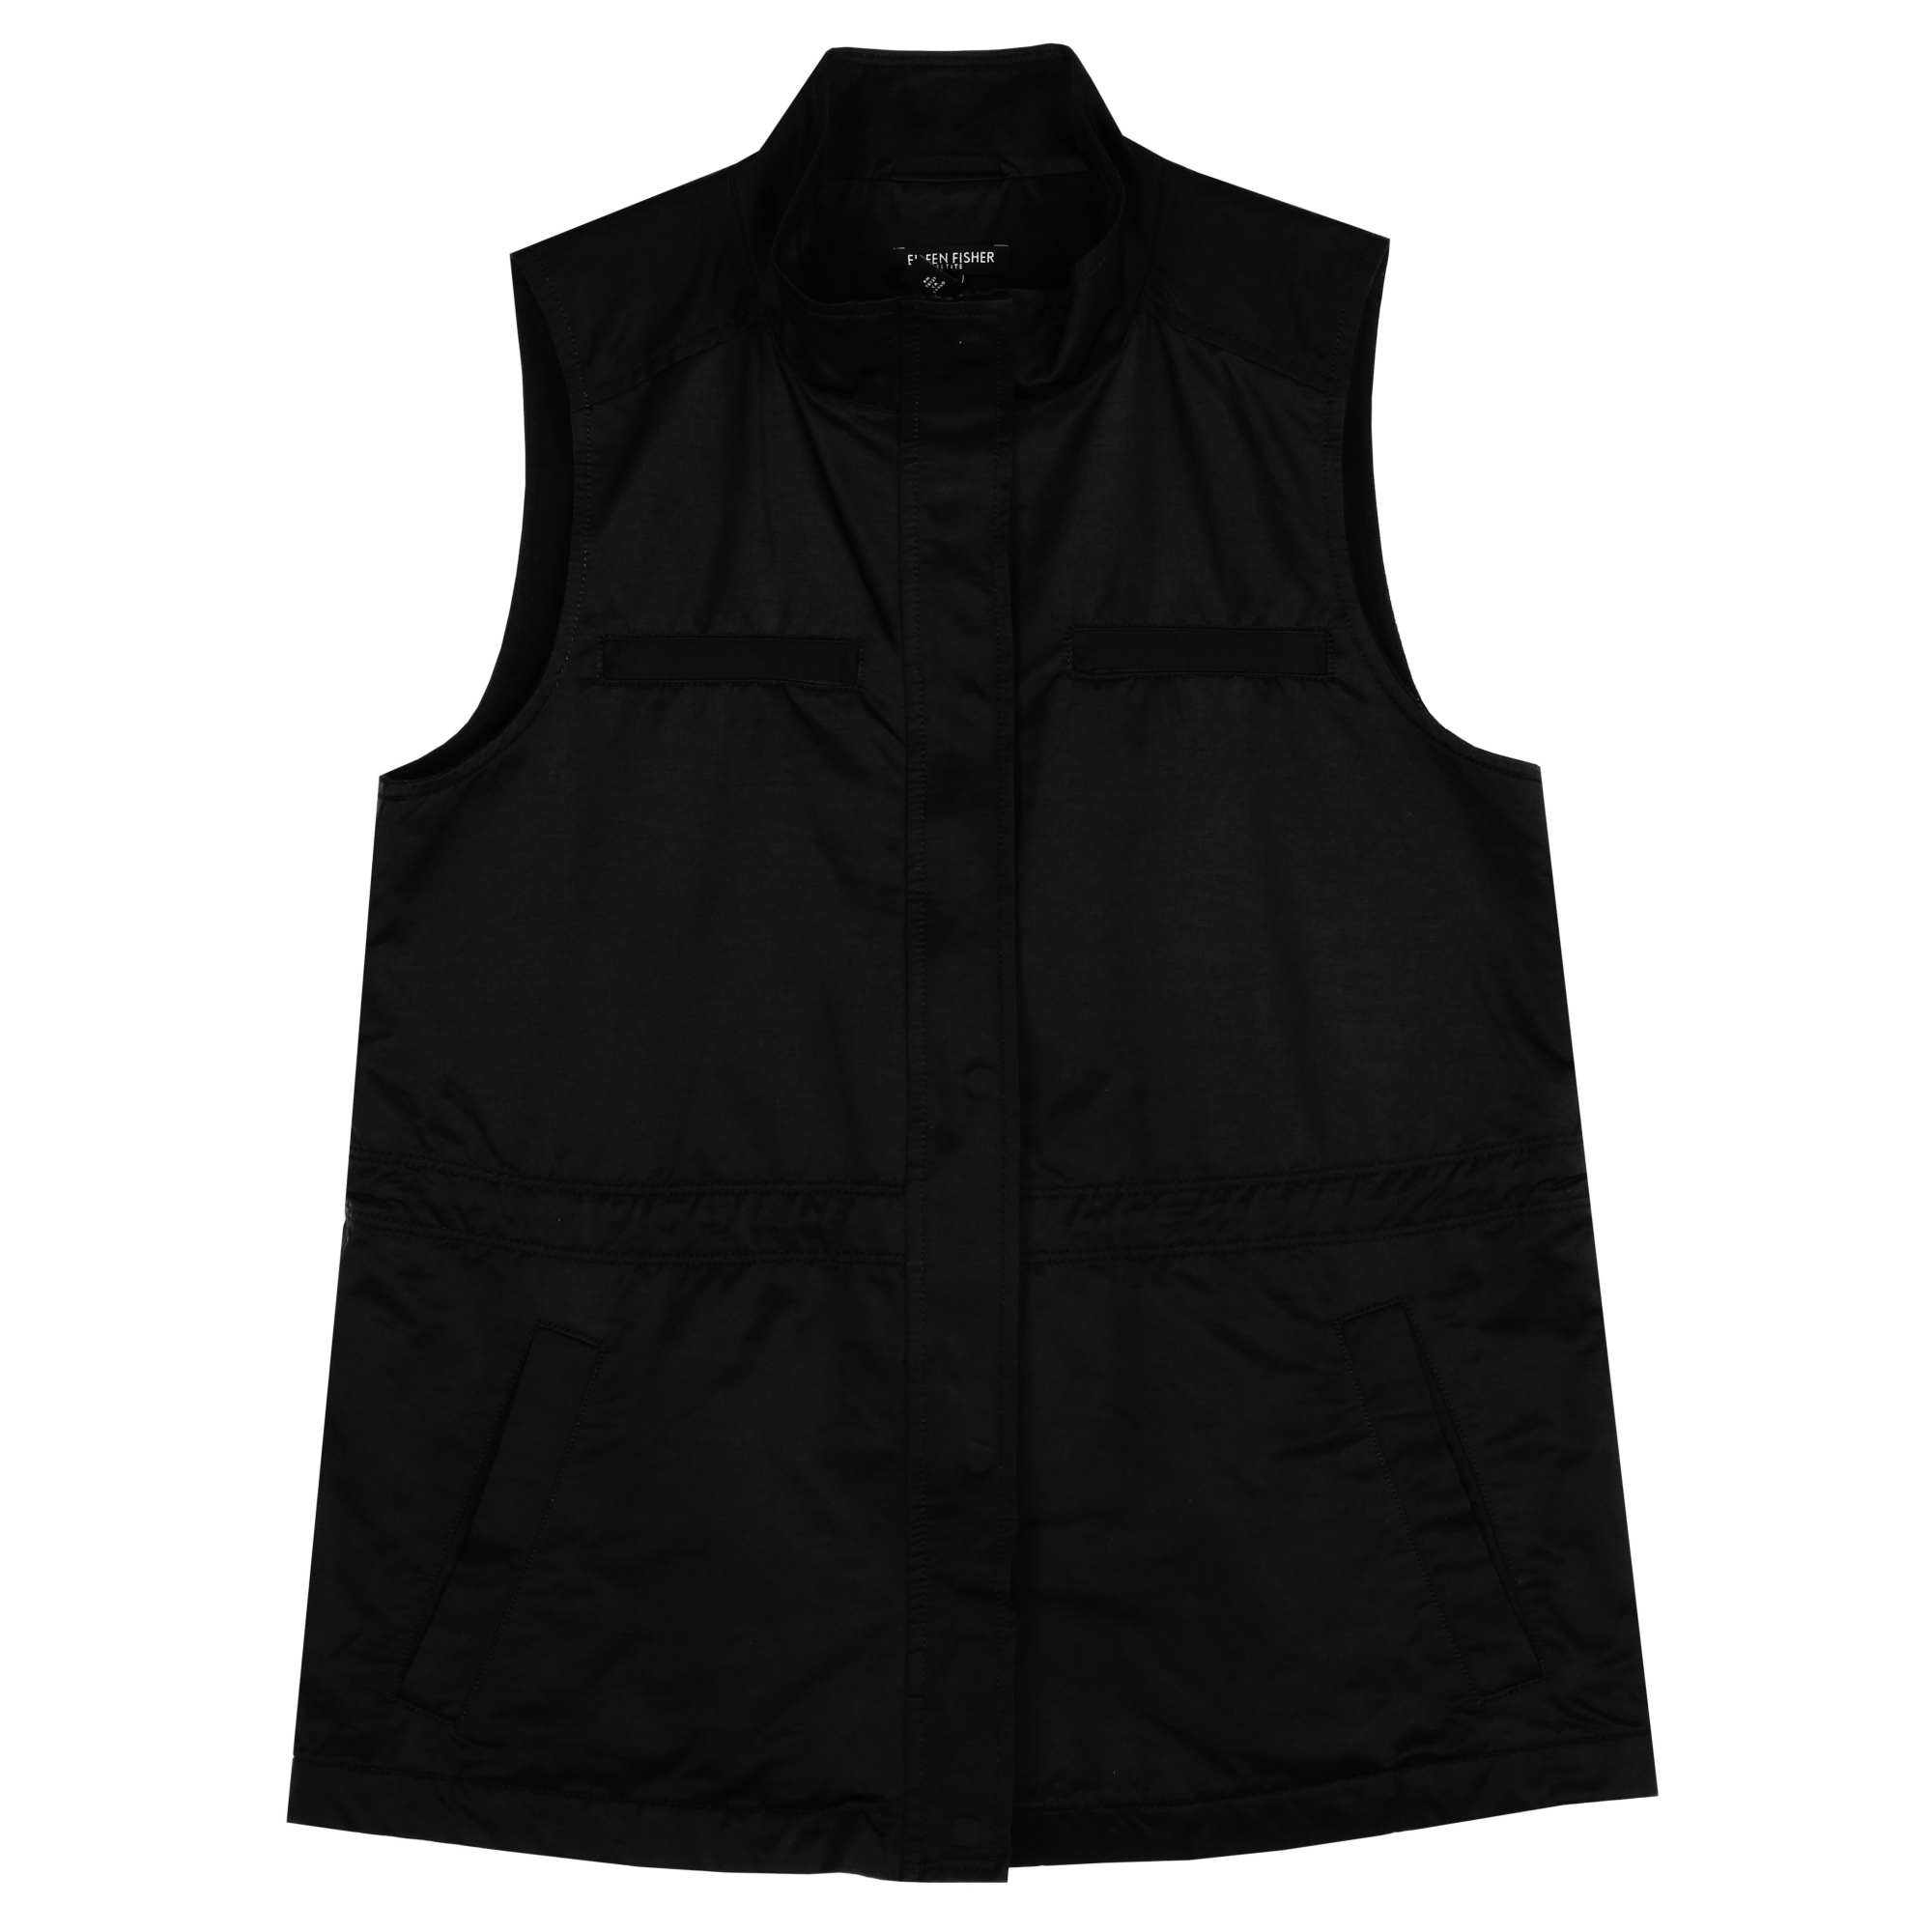 Organic Cotton Nylon Outerwear Vest